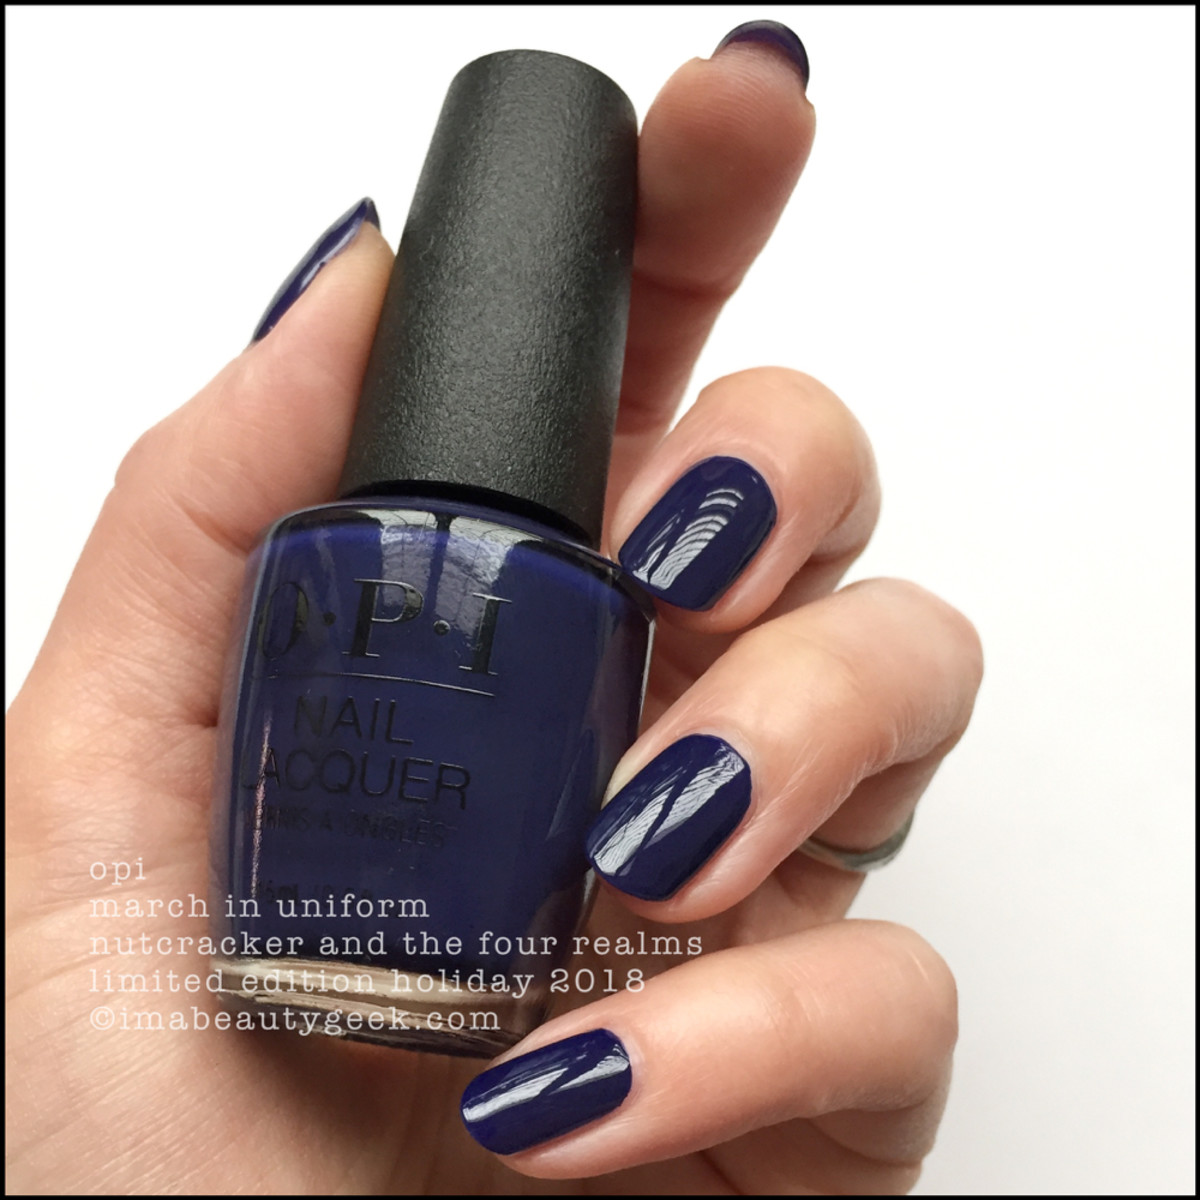 OPI March In Uniform - OPI Nutcracker Holiday 2018